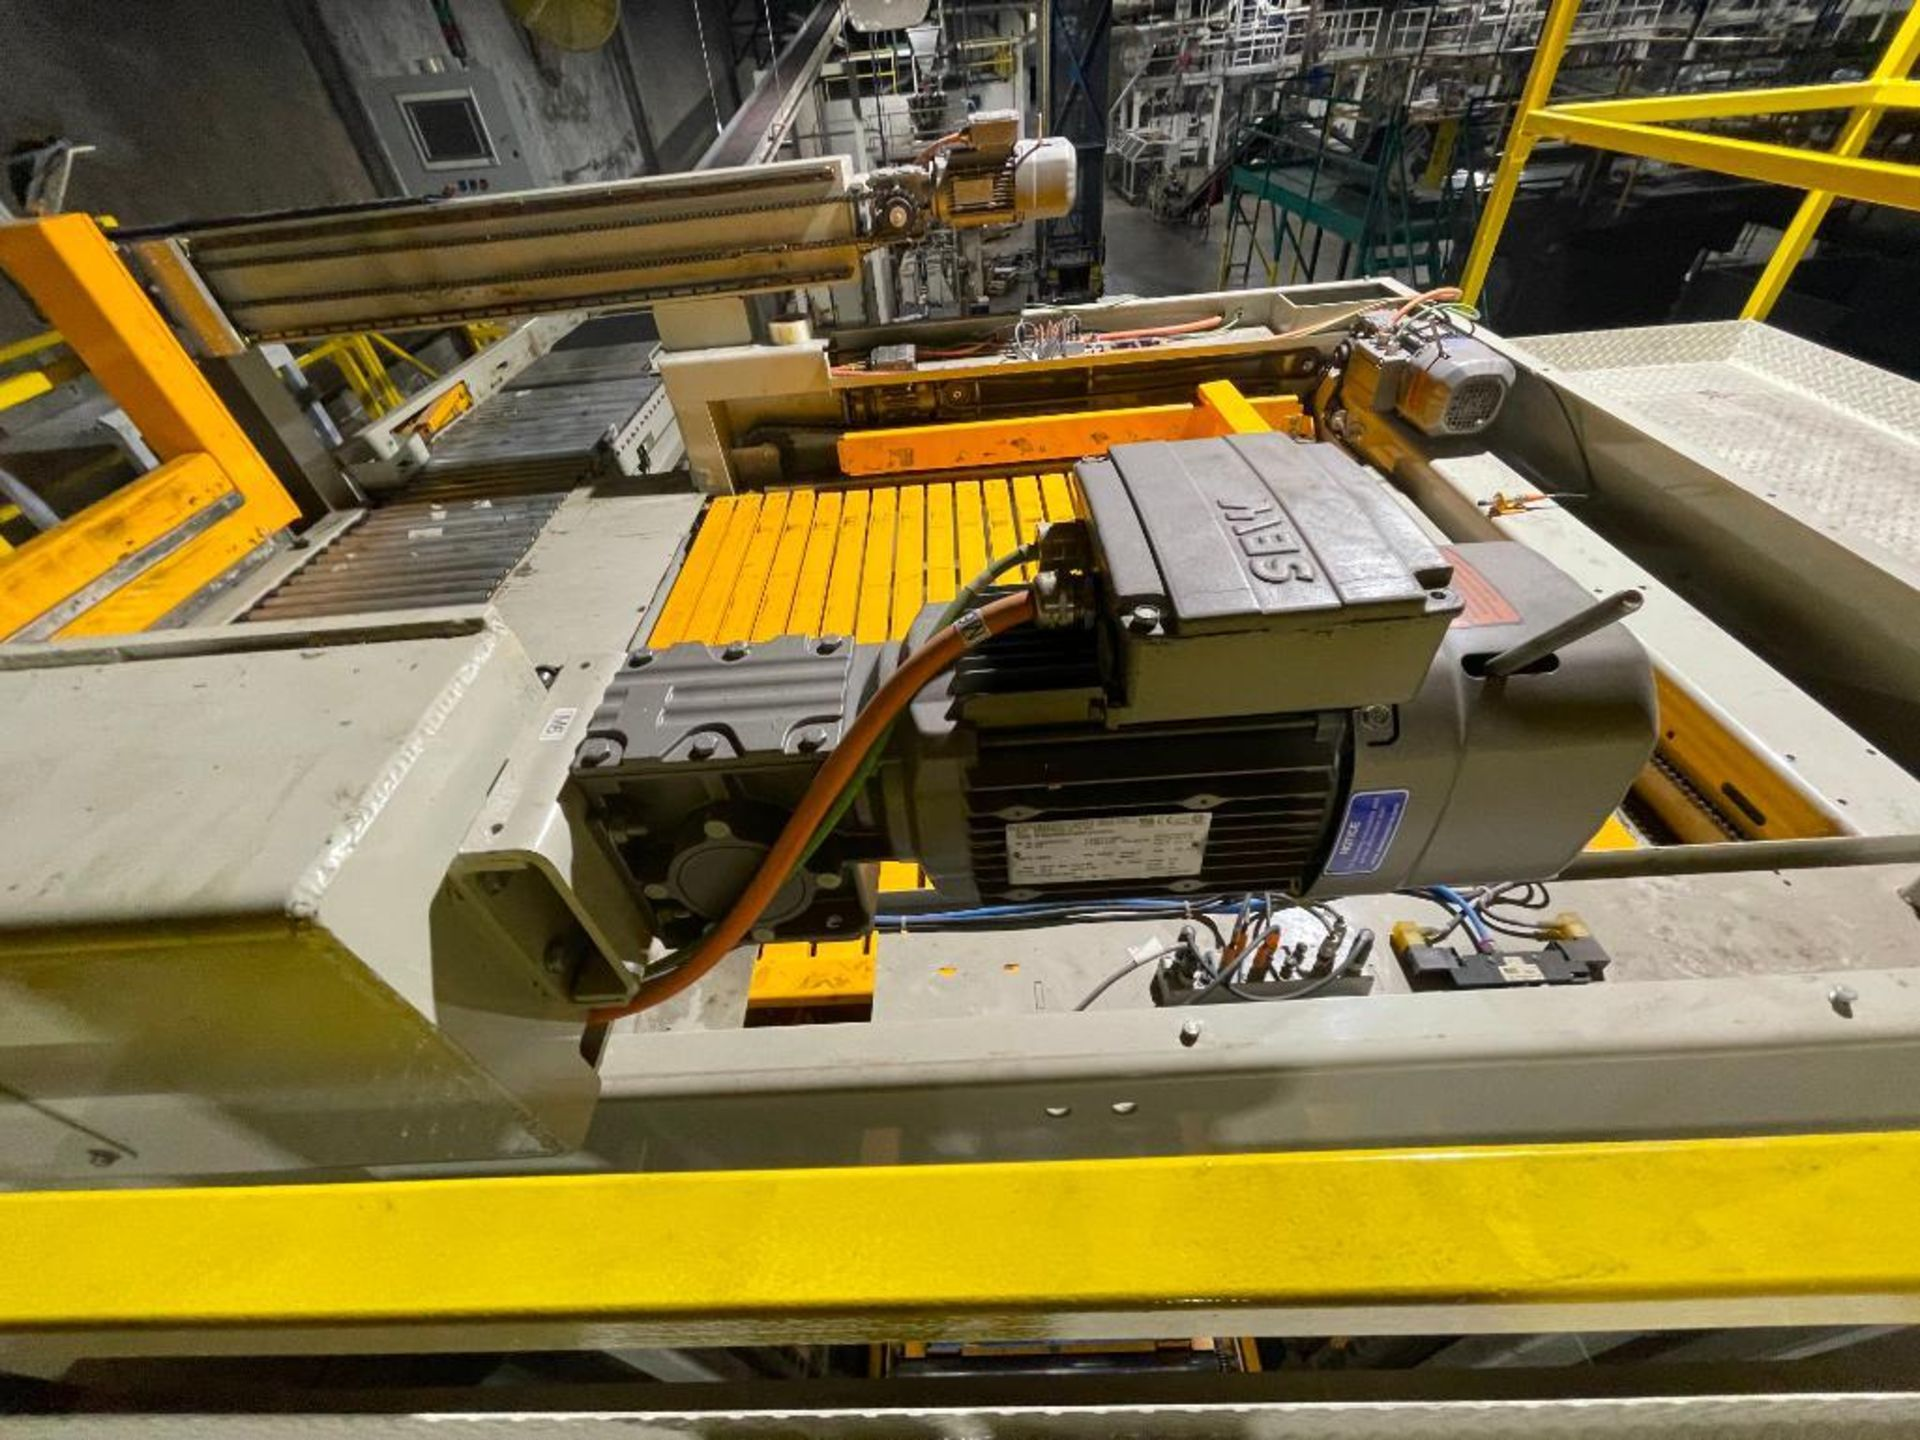 2013 TopTier downstacker, model DS with integrated TopTier pallet wrapper - Image 59 of 66